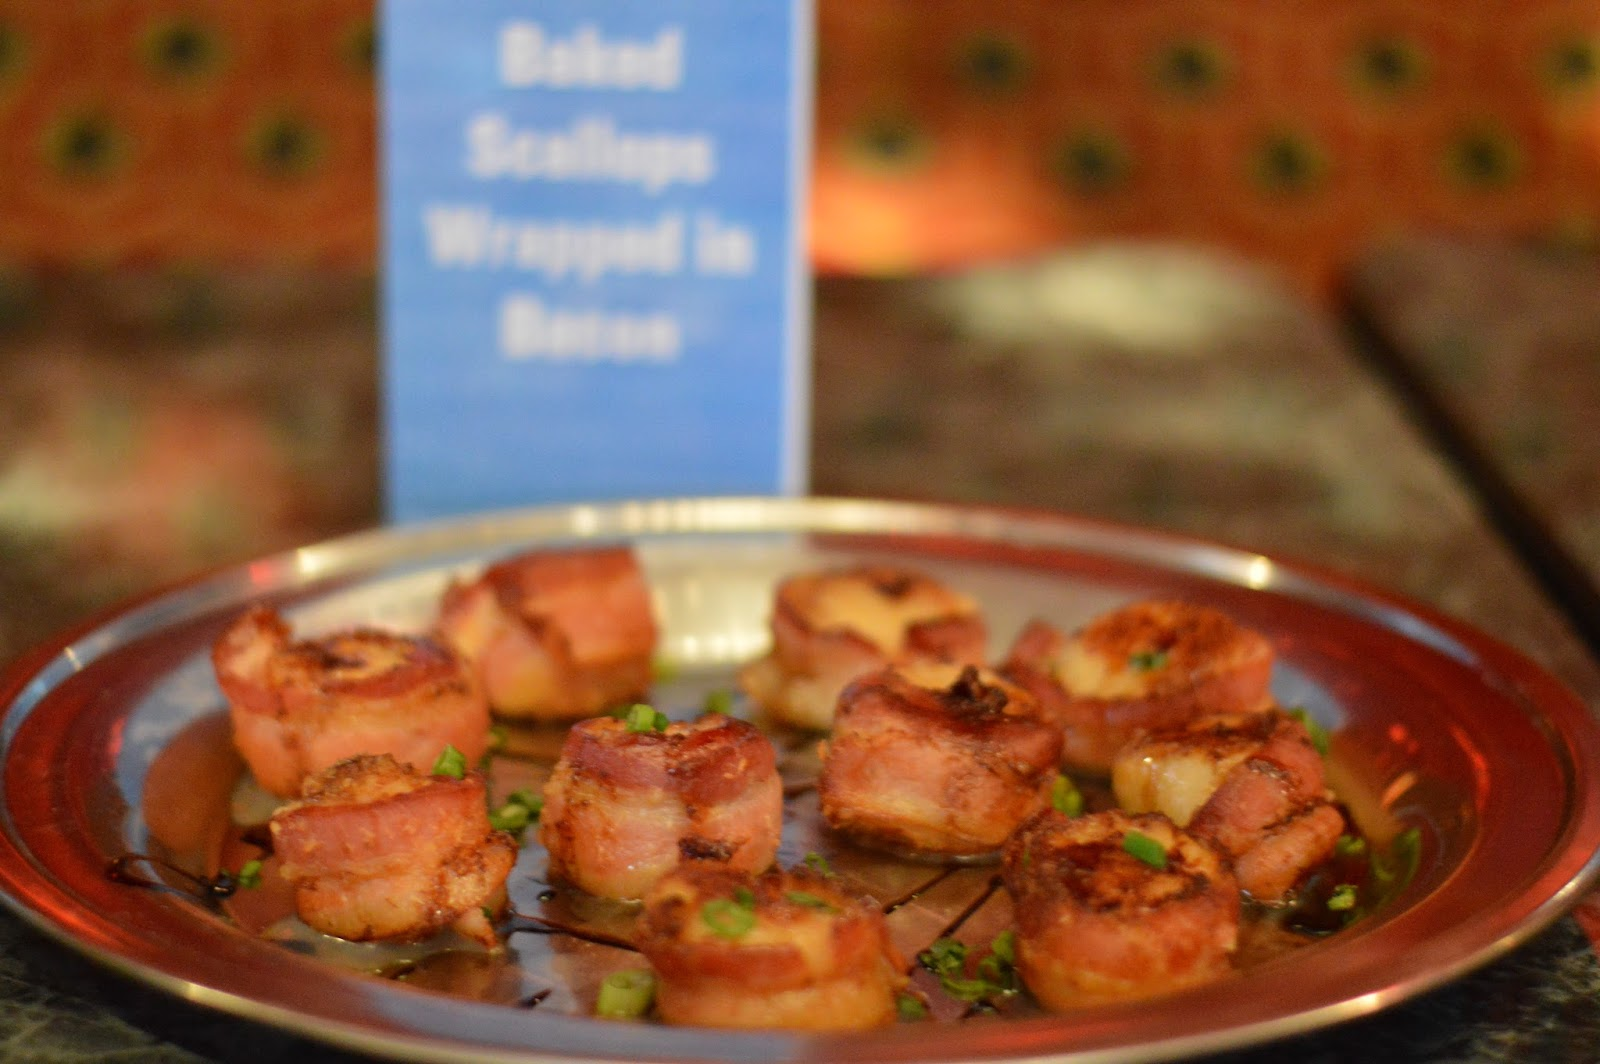 Bacon Wrapped Scallops at Kings Bowl- Ultimate Guide to Restaurants in Rosemont | all dressed up with nothing to drink...